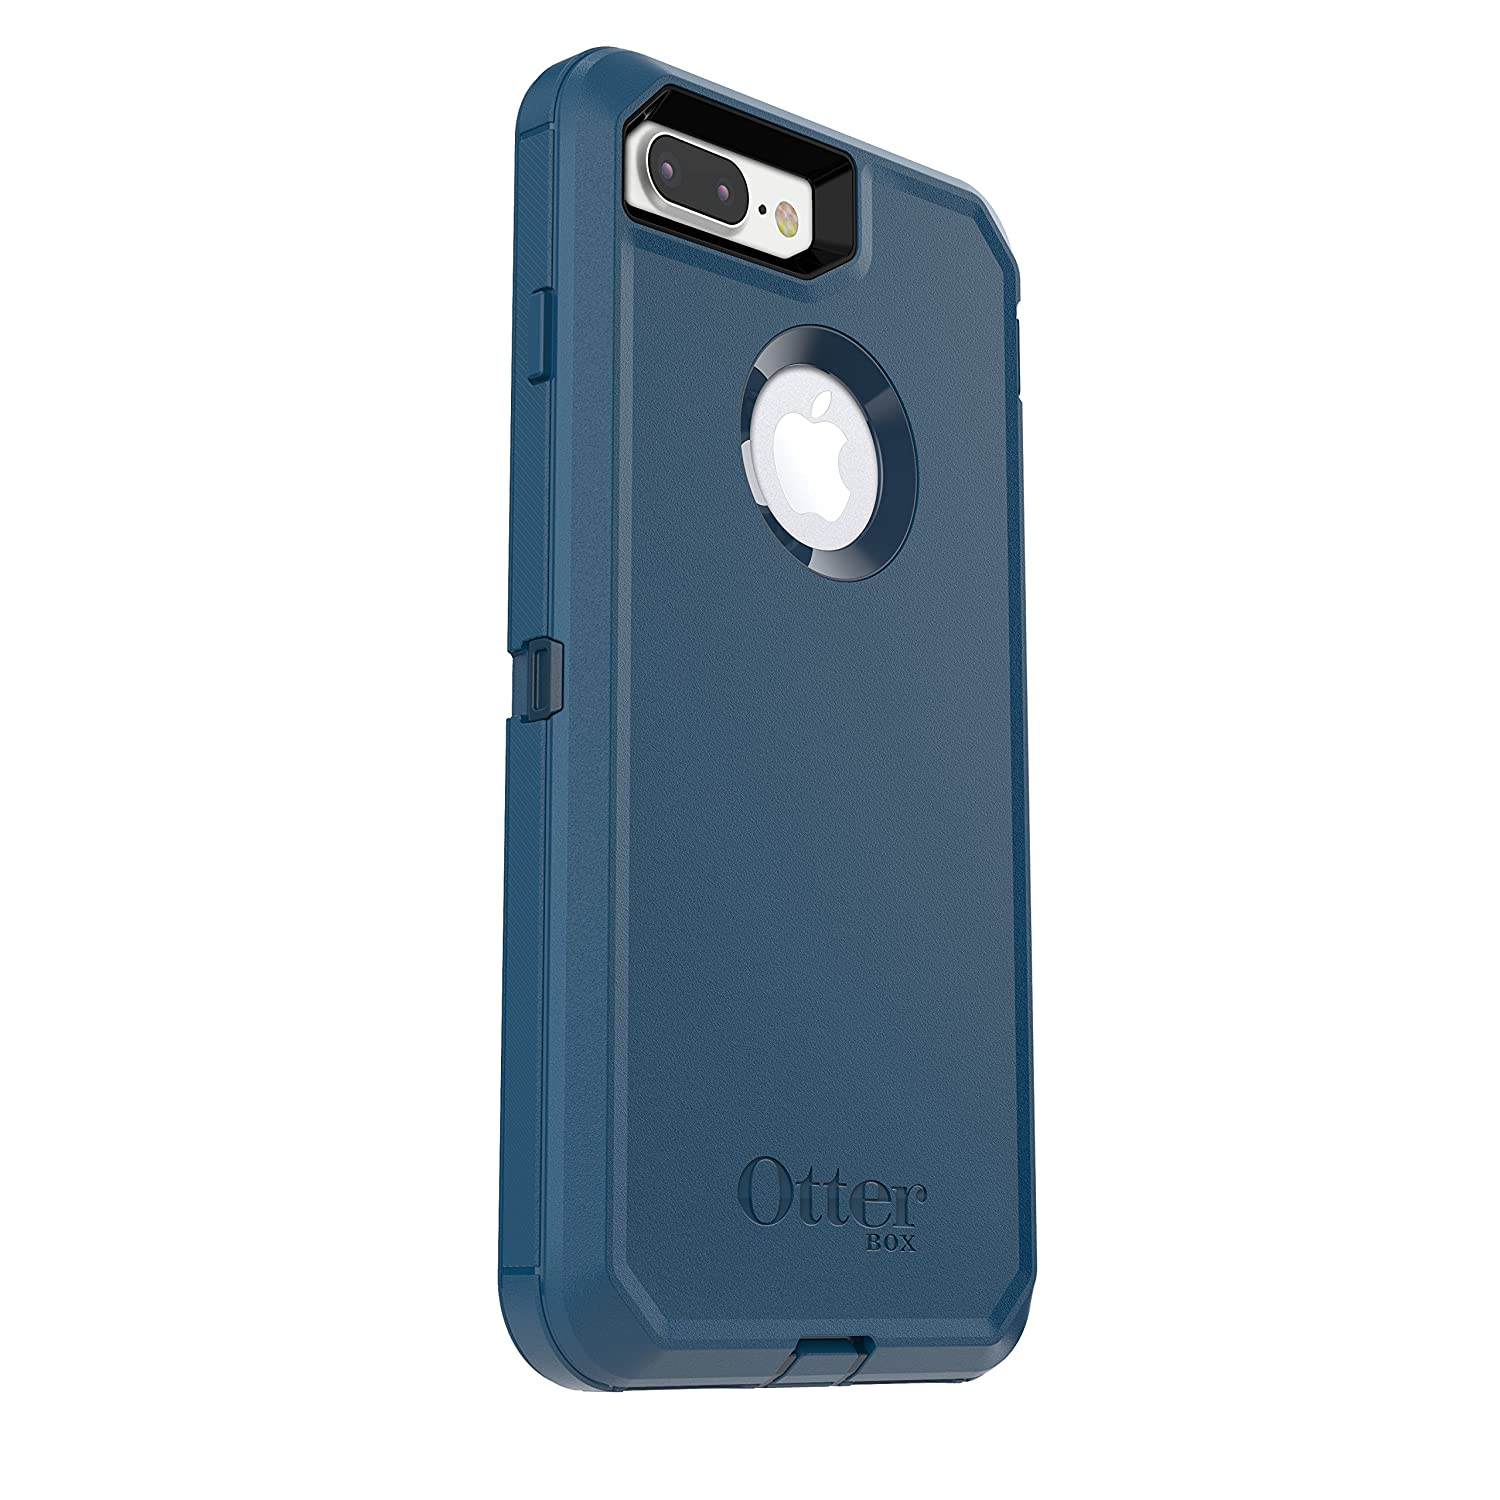 factory price d7300 8b67d OtterBox DEFENDER SERIES Case for iPhone 8 Plus & iPhone 7 Plus (ONLY) -  Retail Packaging - BESPOKE WAY (BLAZER BLUE/STORMY SEAS BLUE)